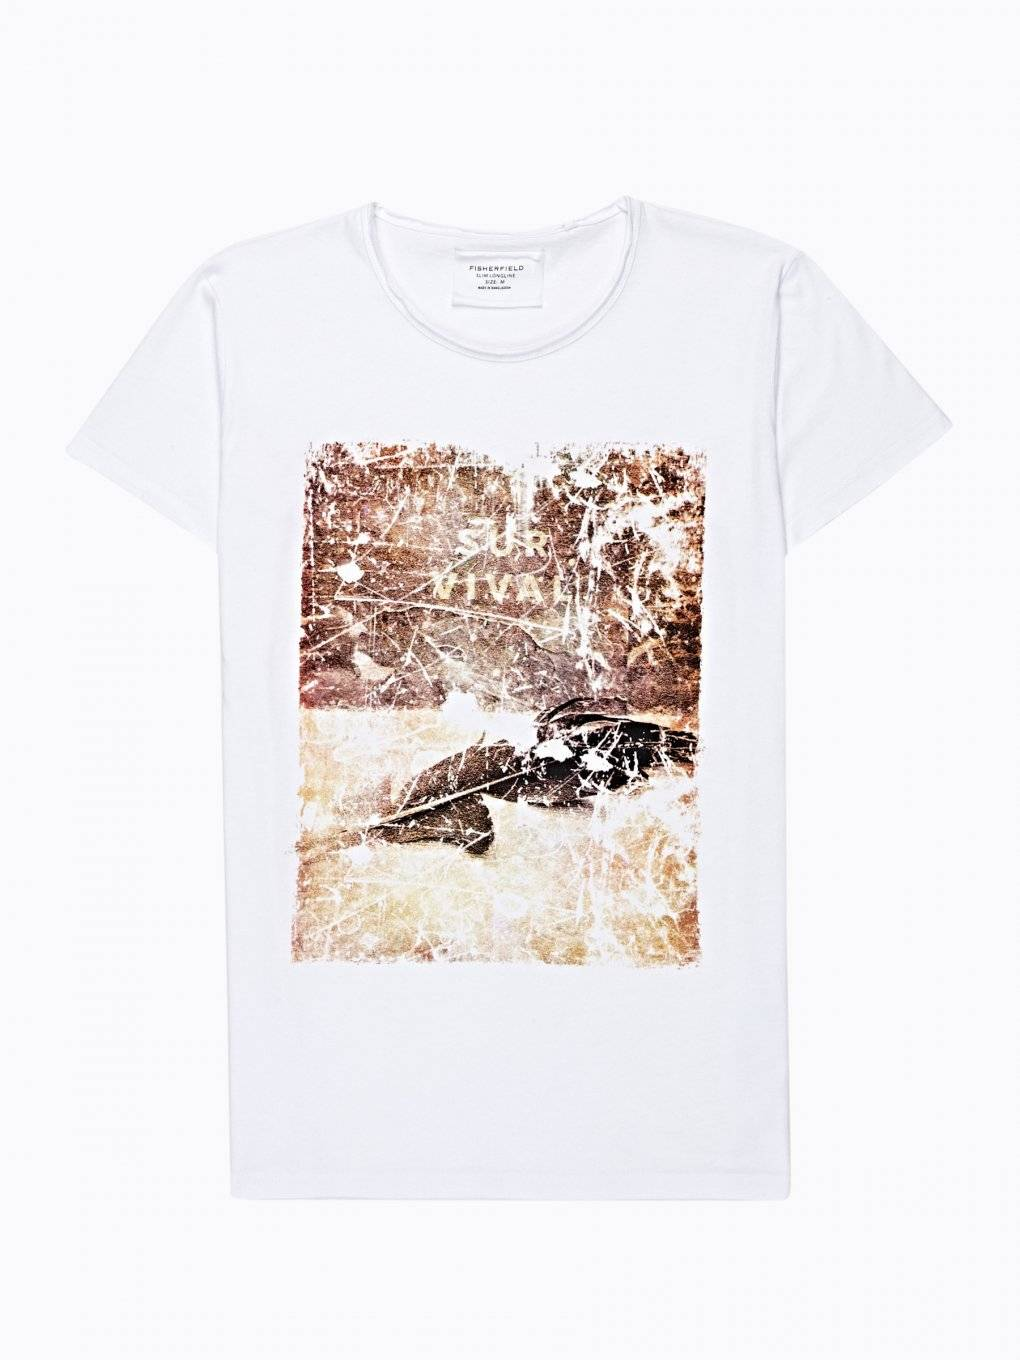 PRINTED T-SHIRT WITH RAW DETAILS